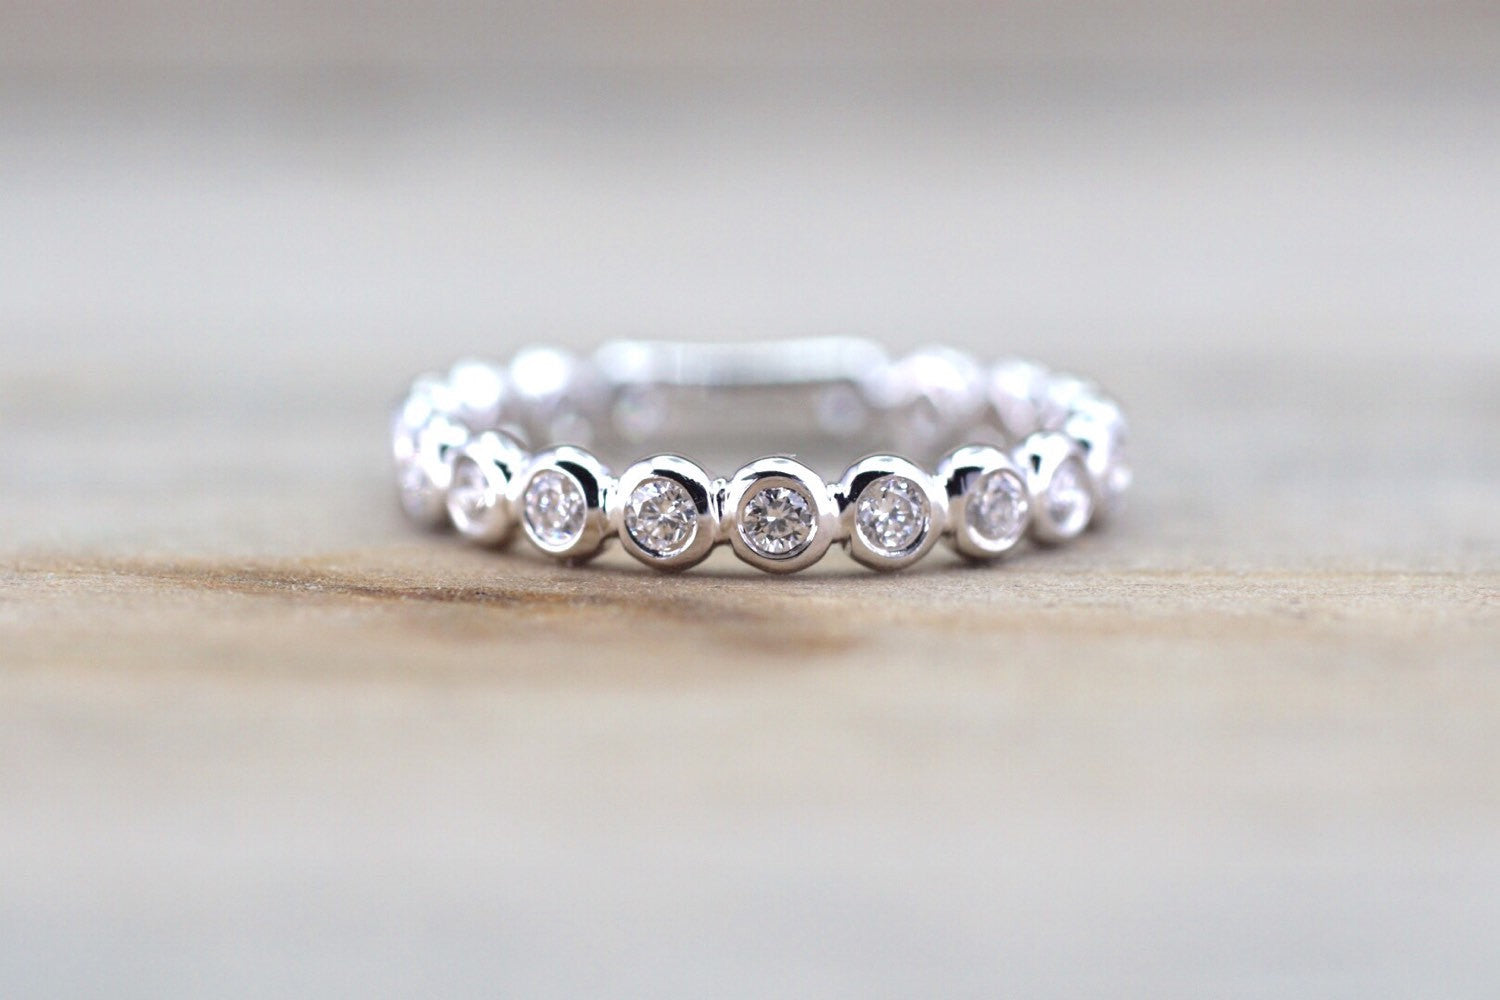 18kt White Gold Round Diamond Eternity Band Smooth Wedding Engagement Ring Love Promise Bezel Stack